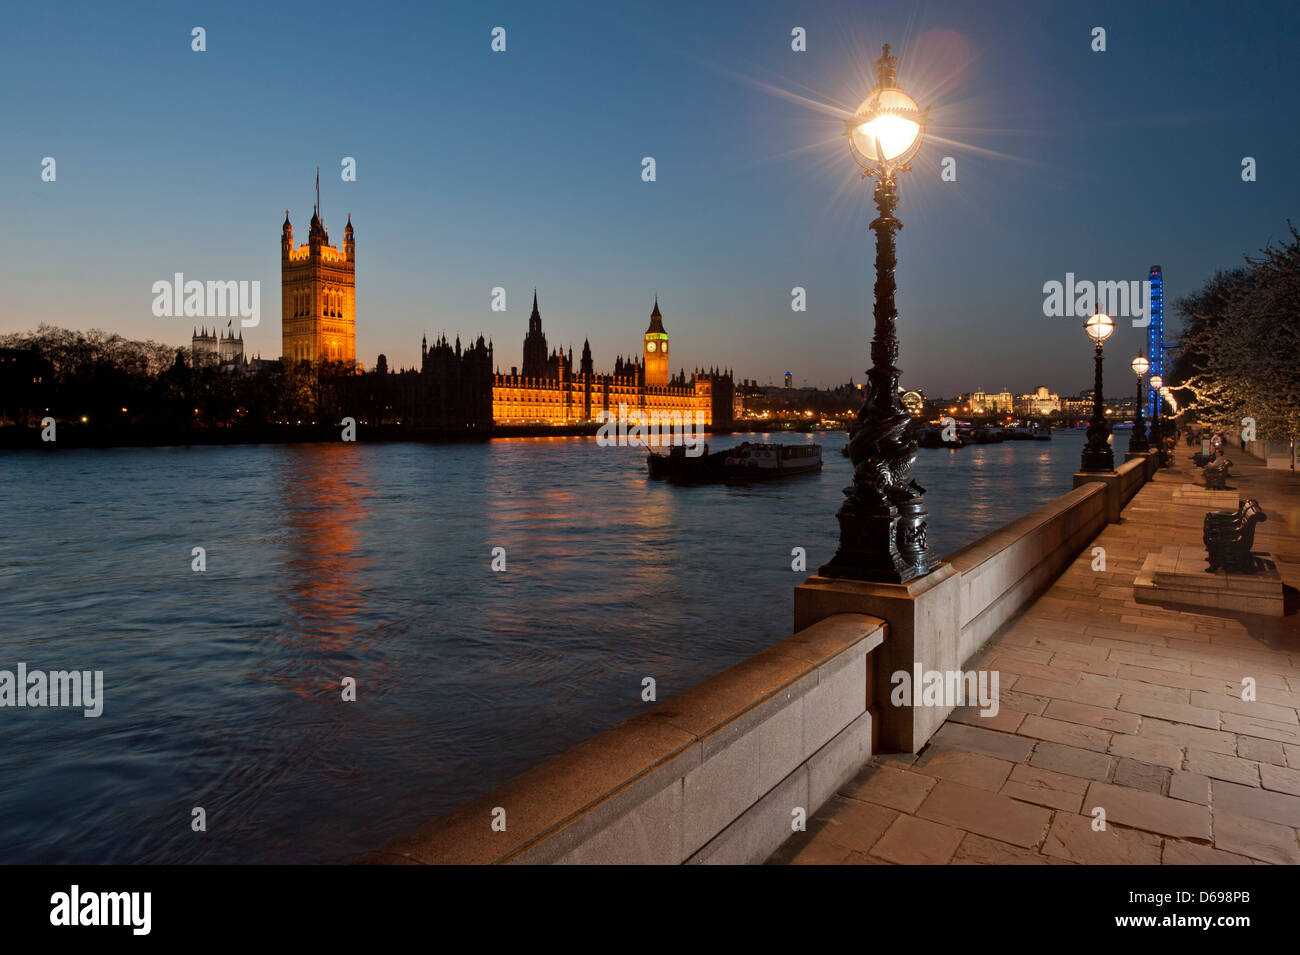 Houses of Parliament on the north bank of the River Thames as seen from the south bank, near Lambeth Bridge. With Stock Photo